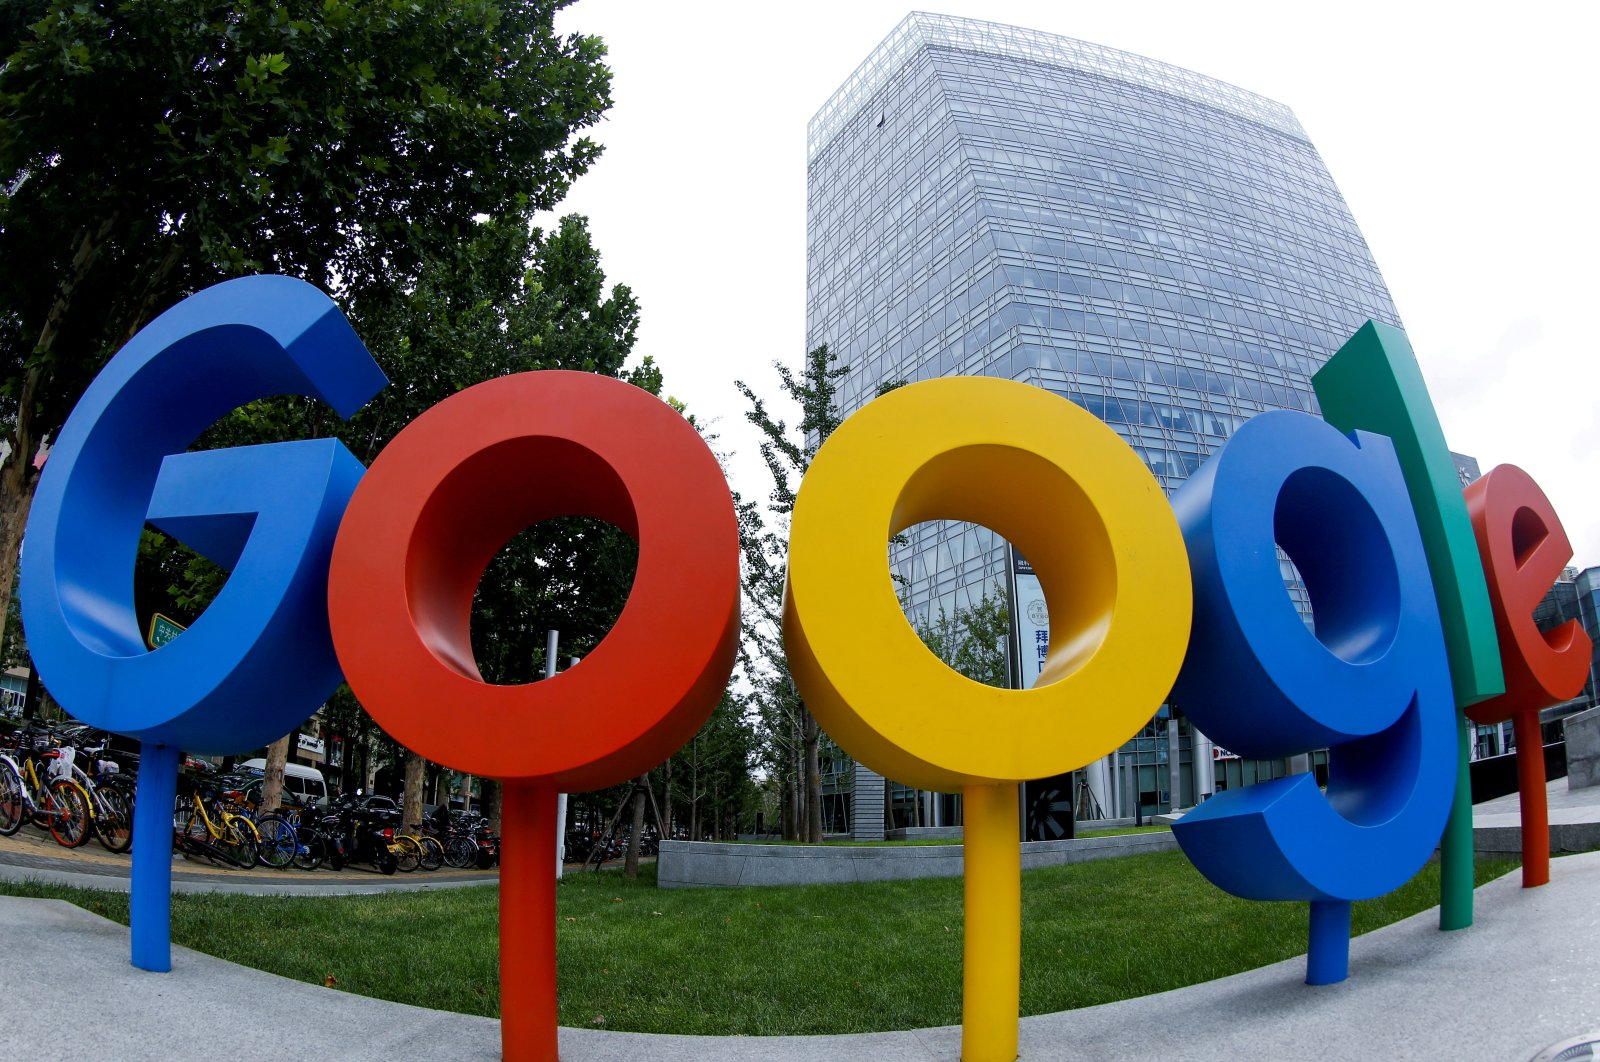 The brand logo of Alphabet Inc's Google is seen outside its office in Beijing, China, Aug. 8, 2018. (Reuters Photo)